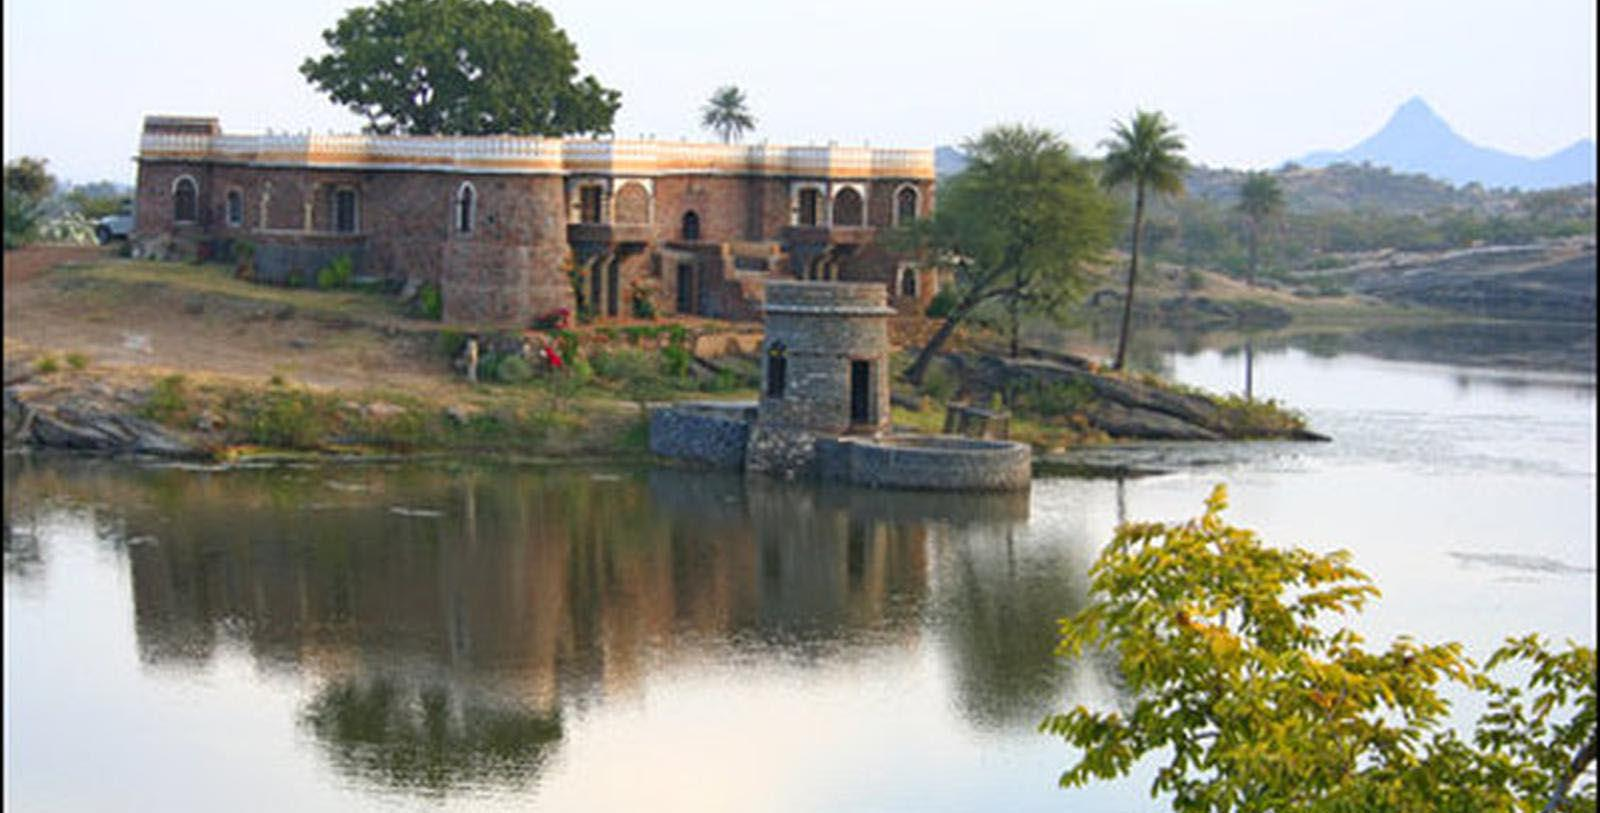 Image of Hotel Exterior Fort Seengh Sagar, 1670, Member of Historic Hotels Worldwide, in Deogarh, India, Special Offers, Discounted Rates, Families, Romantic Escape, Honeymoons, Anniversaries, Reunions